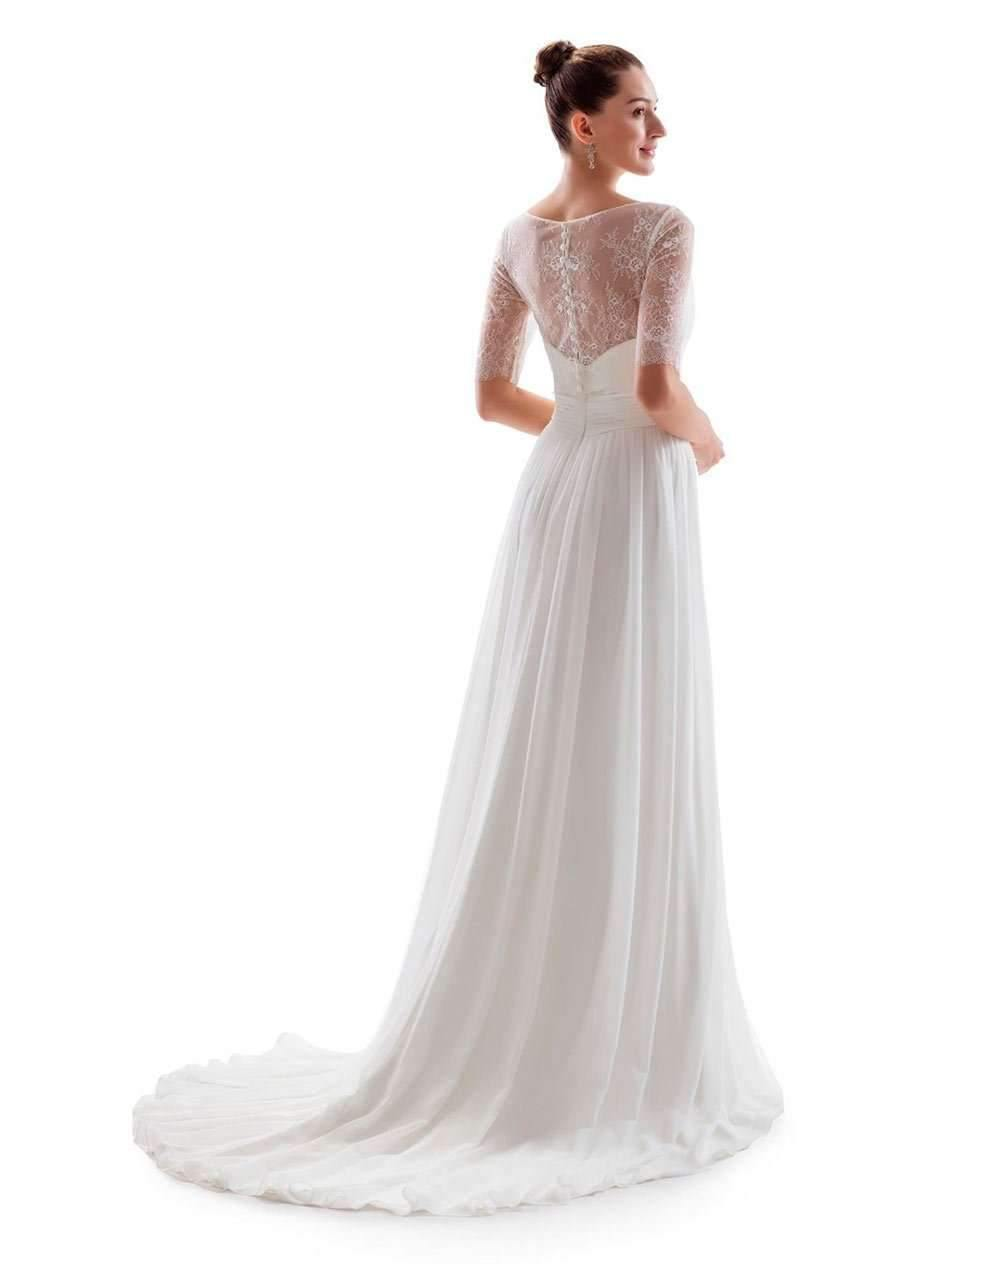 UK16 - NADIA WITH TRAIN - SALE - Adore Bridal and Occasion Wear